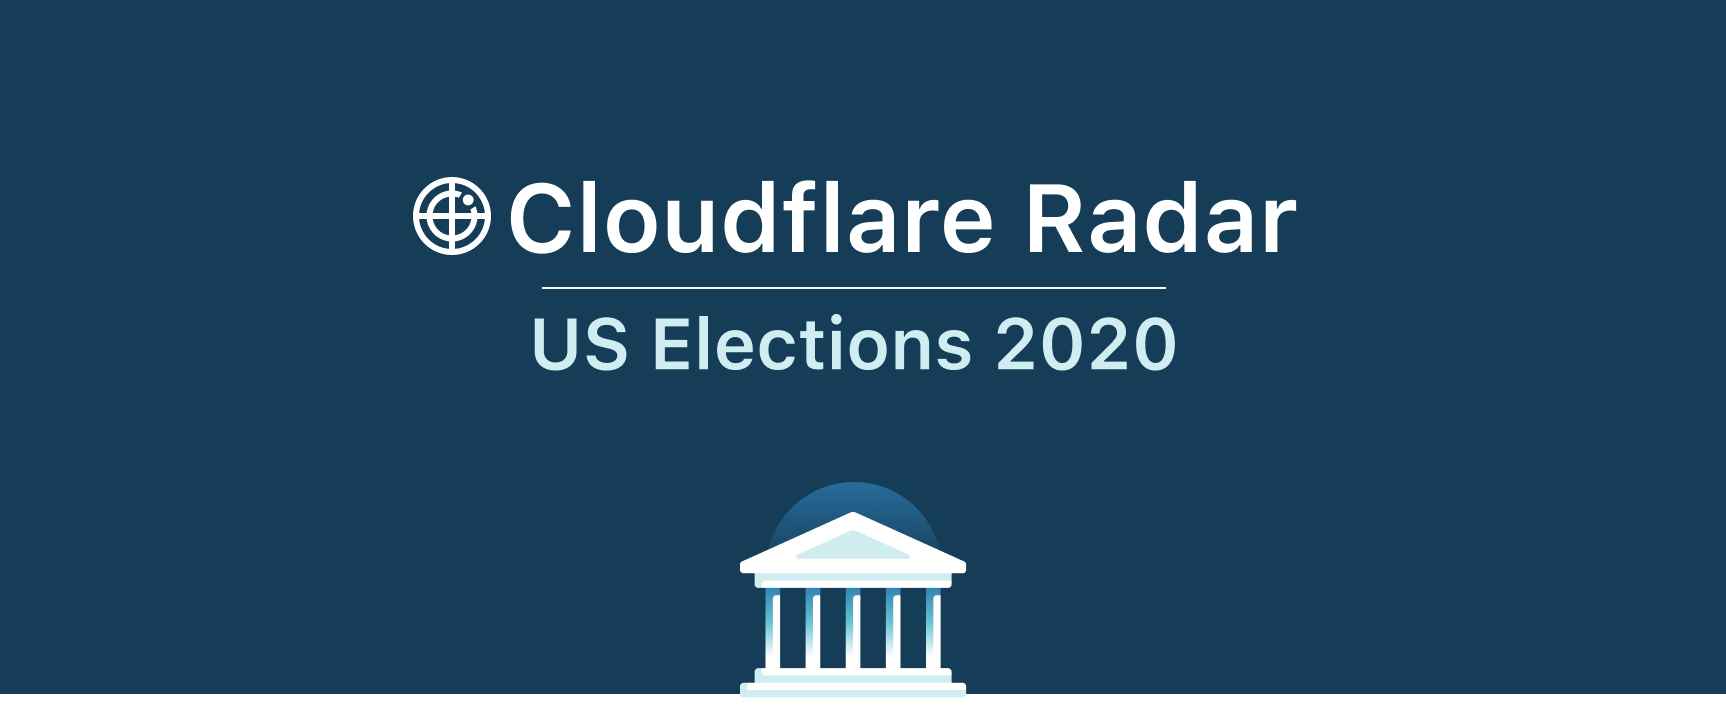 The Cloudflare Radar 2020 Elections Dashboard